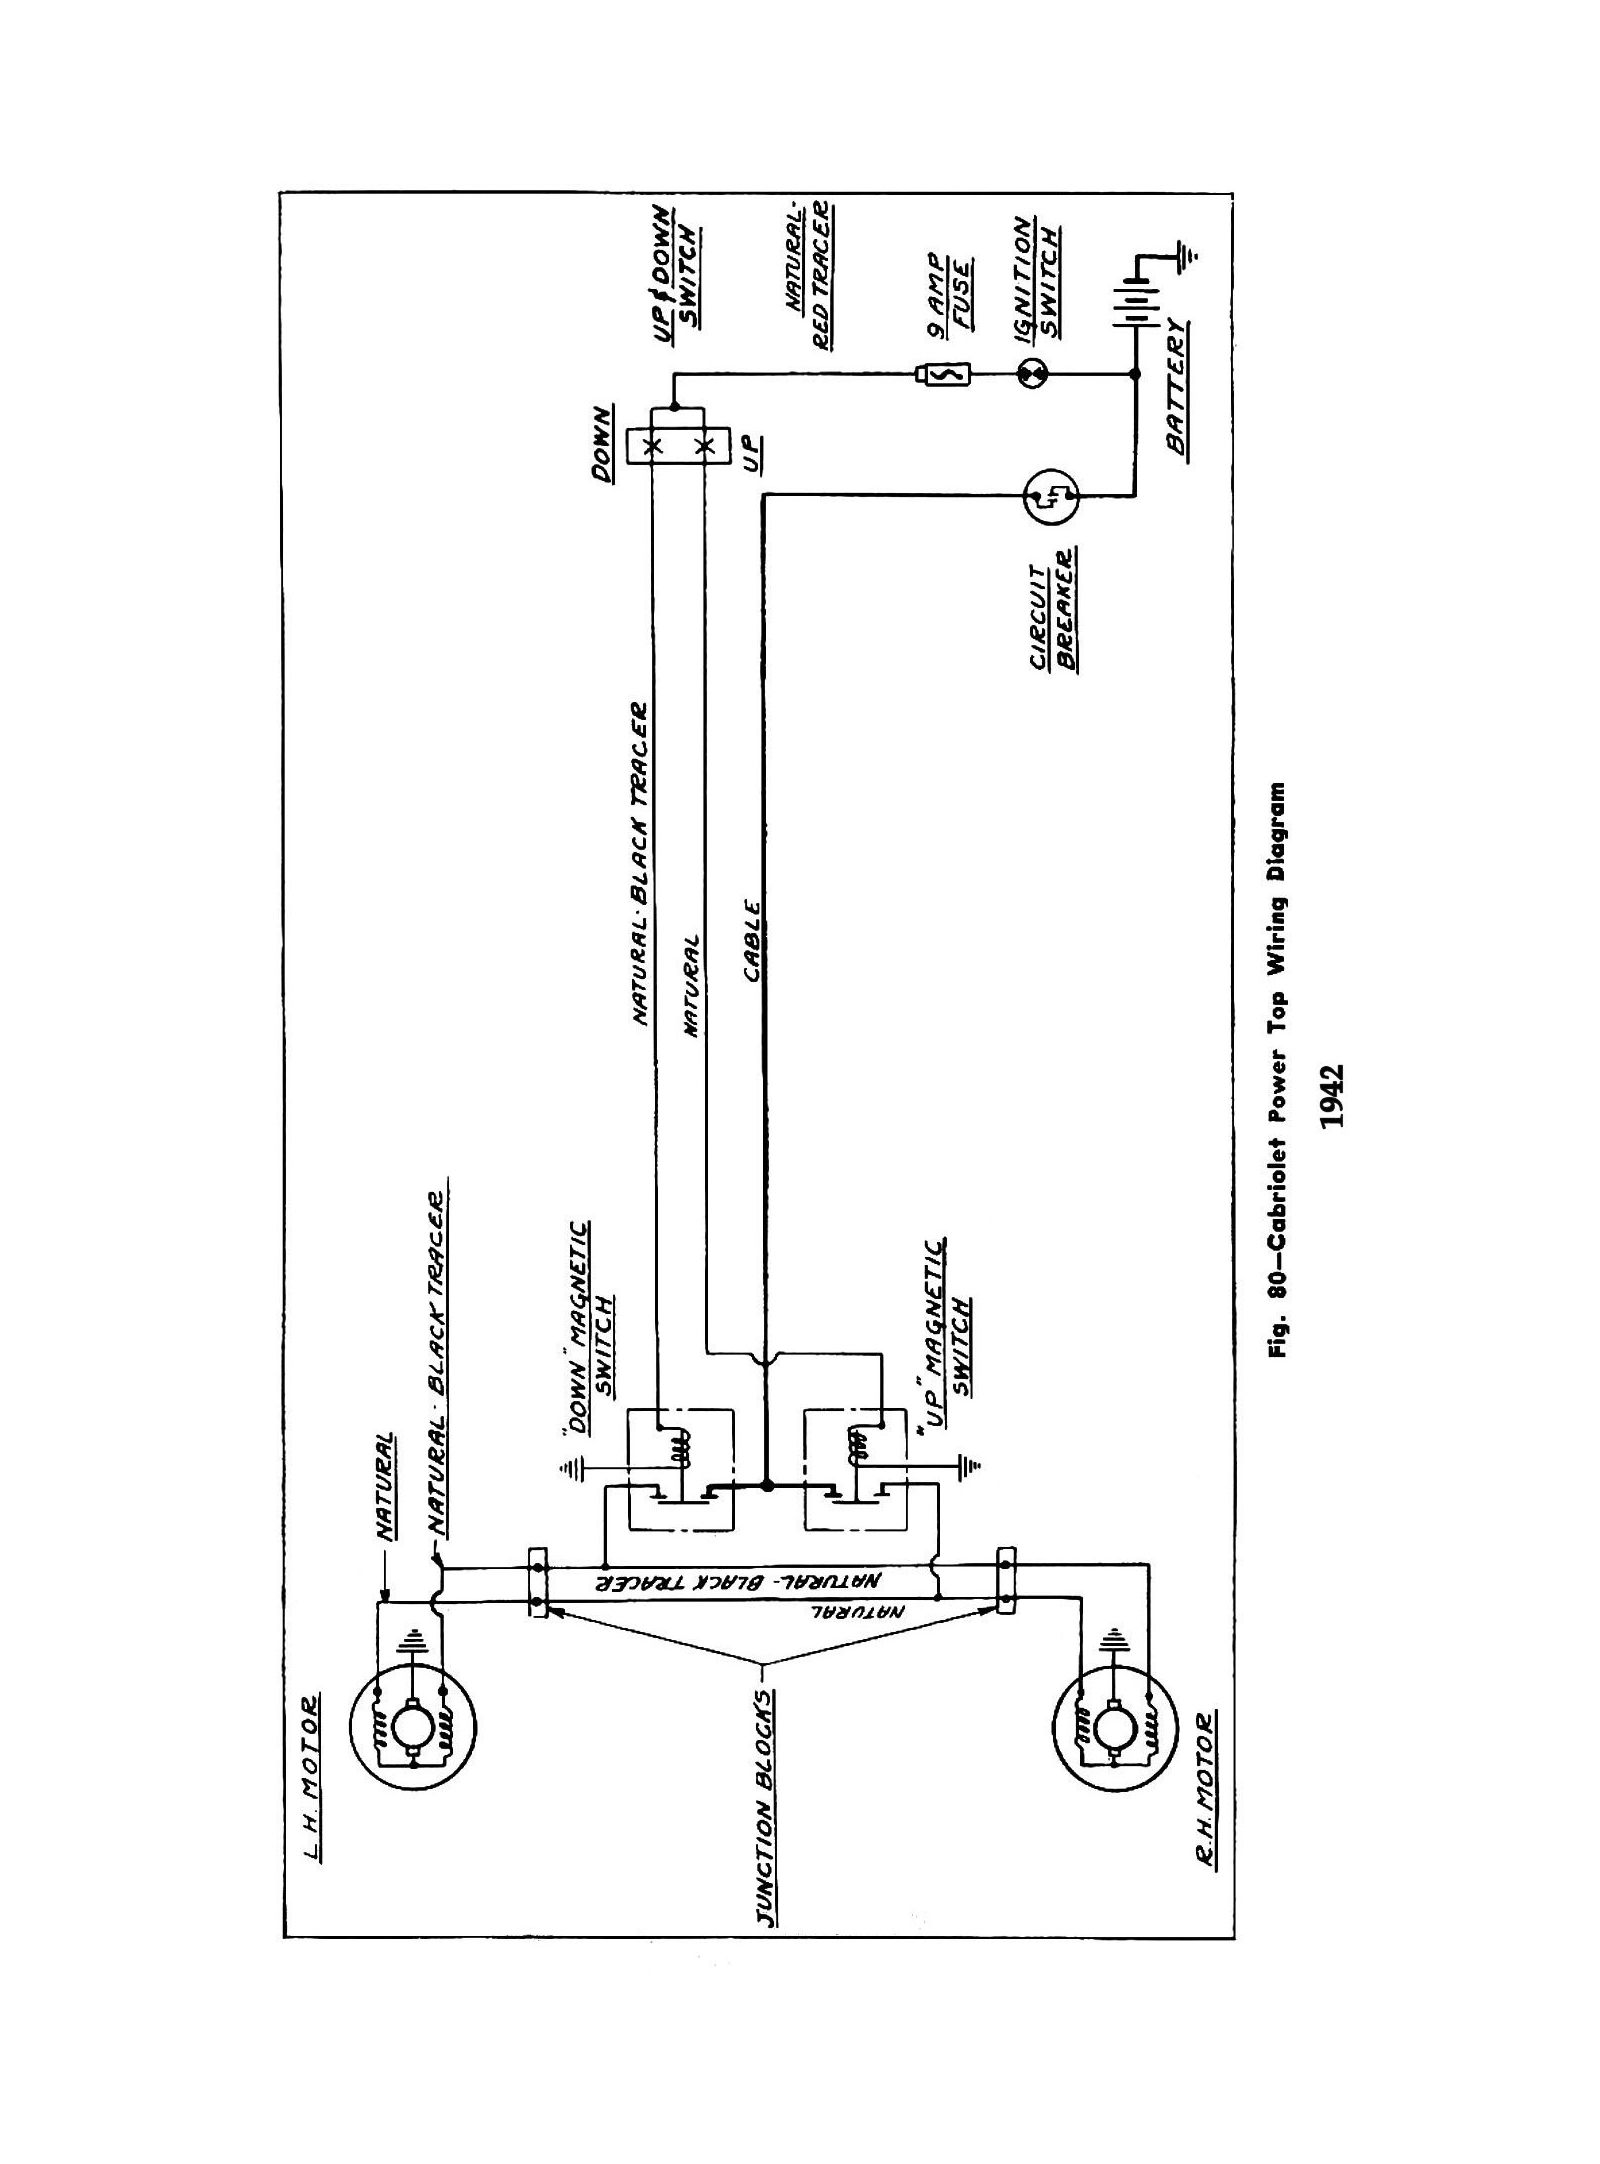 6mg2g Pontiac Sunbird Need Put Engine Coolant Hose further P 0996b43f8037987e moreover Fuel 20injection 20vacuum 20lines as well 03 Hyundai Accent Engine Diagram Html besides 2000 Pontiac Sunfire Starter Wiring Diagram. on pontiac sunbird engine diagram